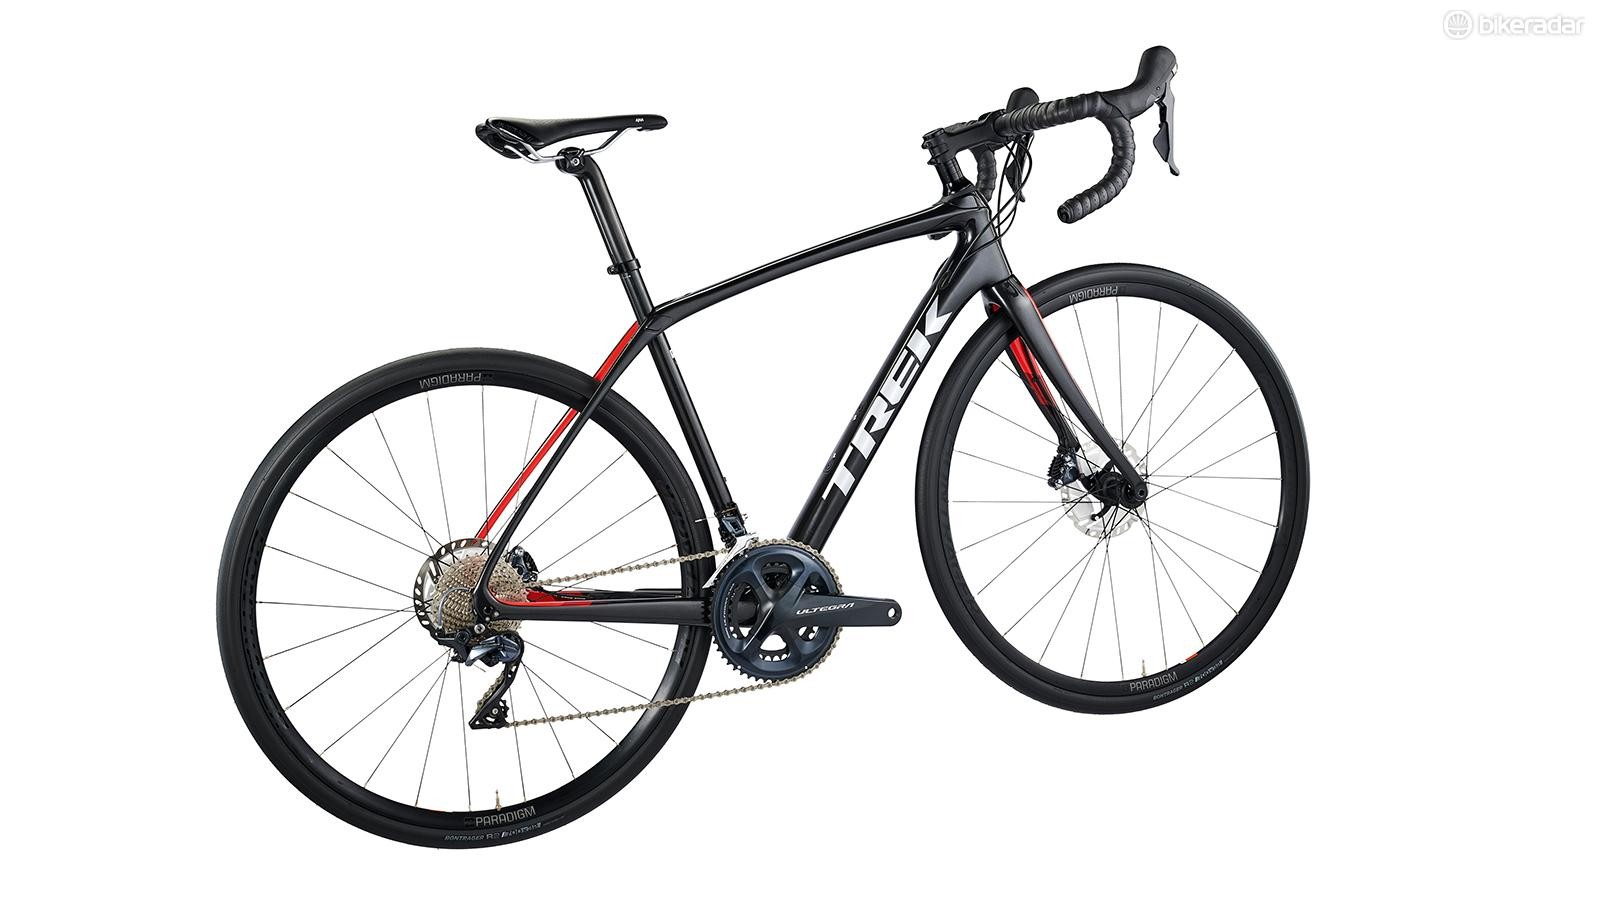 The unisex frame is the same as others within the Trek Domane range, but the women's bike has sex- and size-specific finishing kit